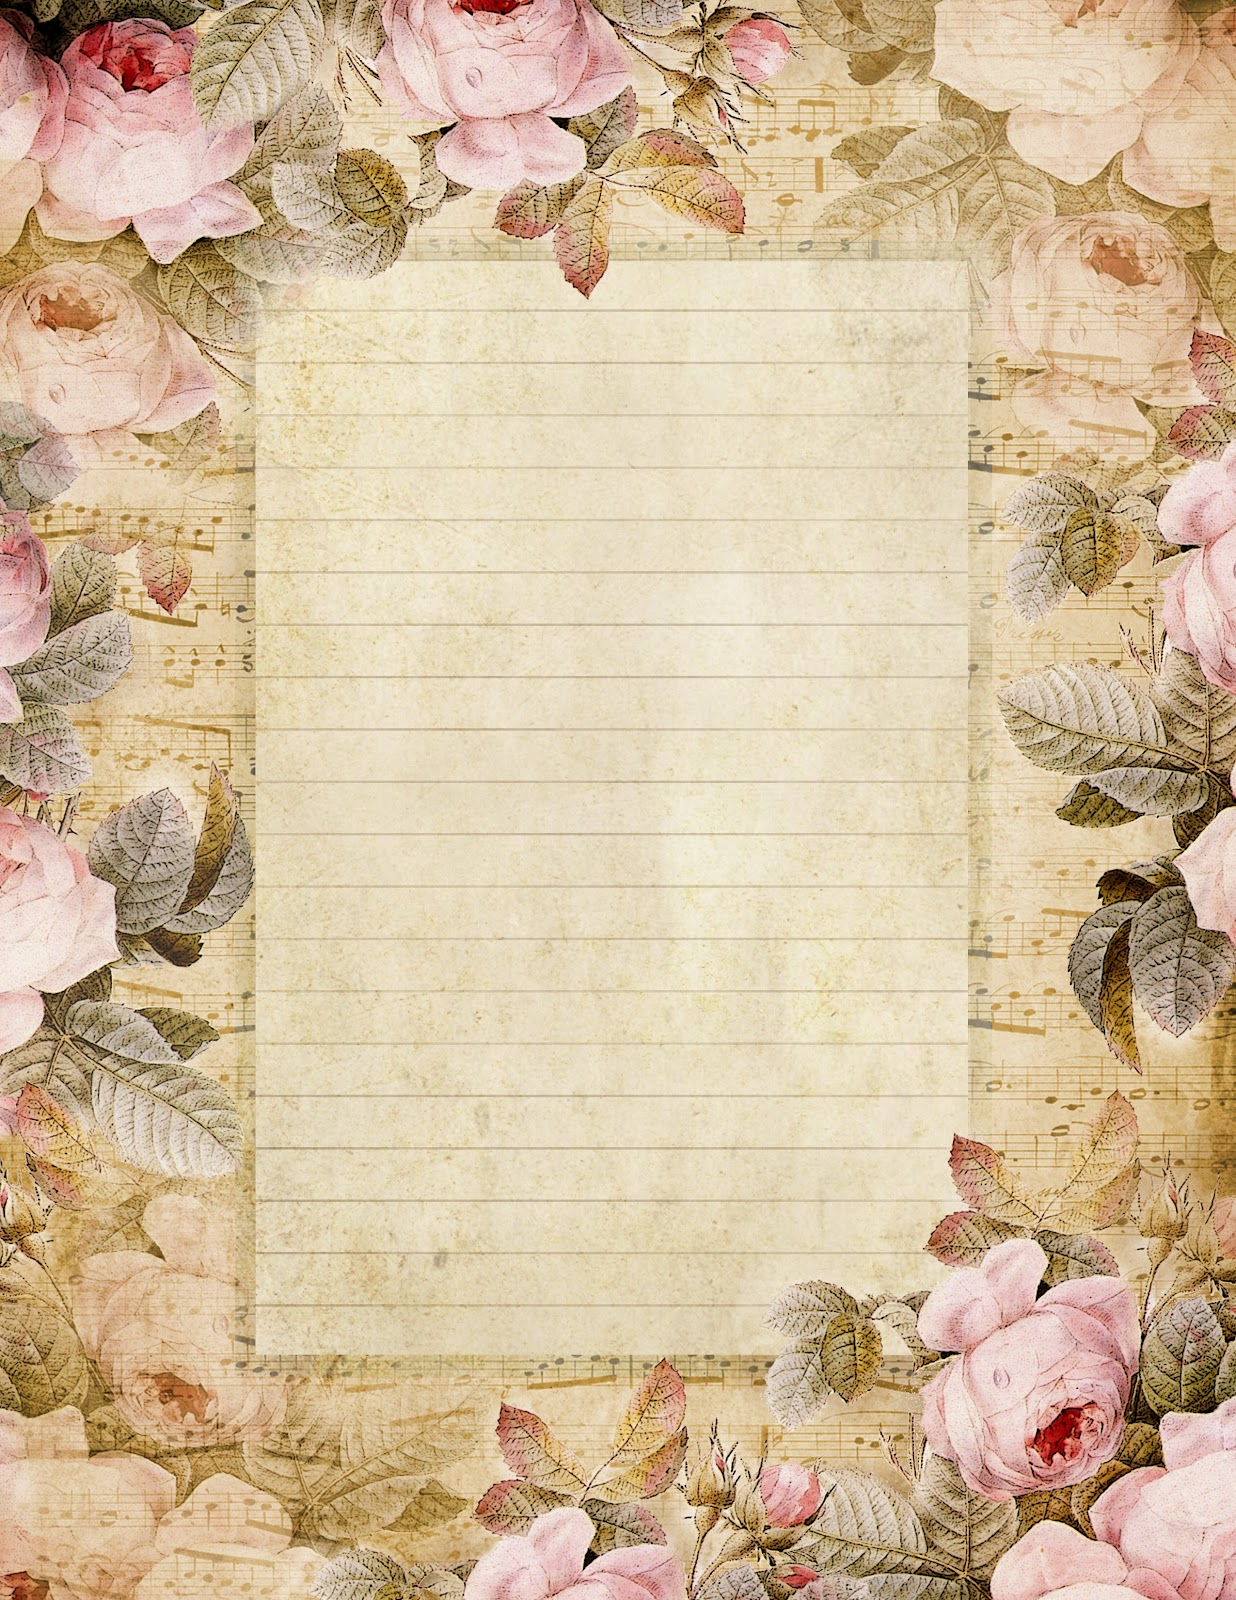 Decorated lined paper